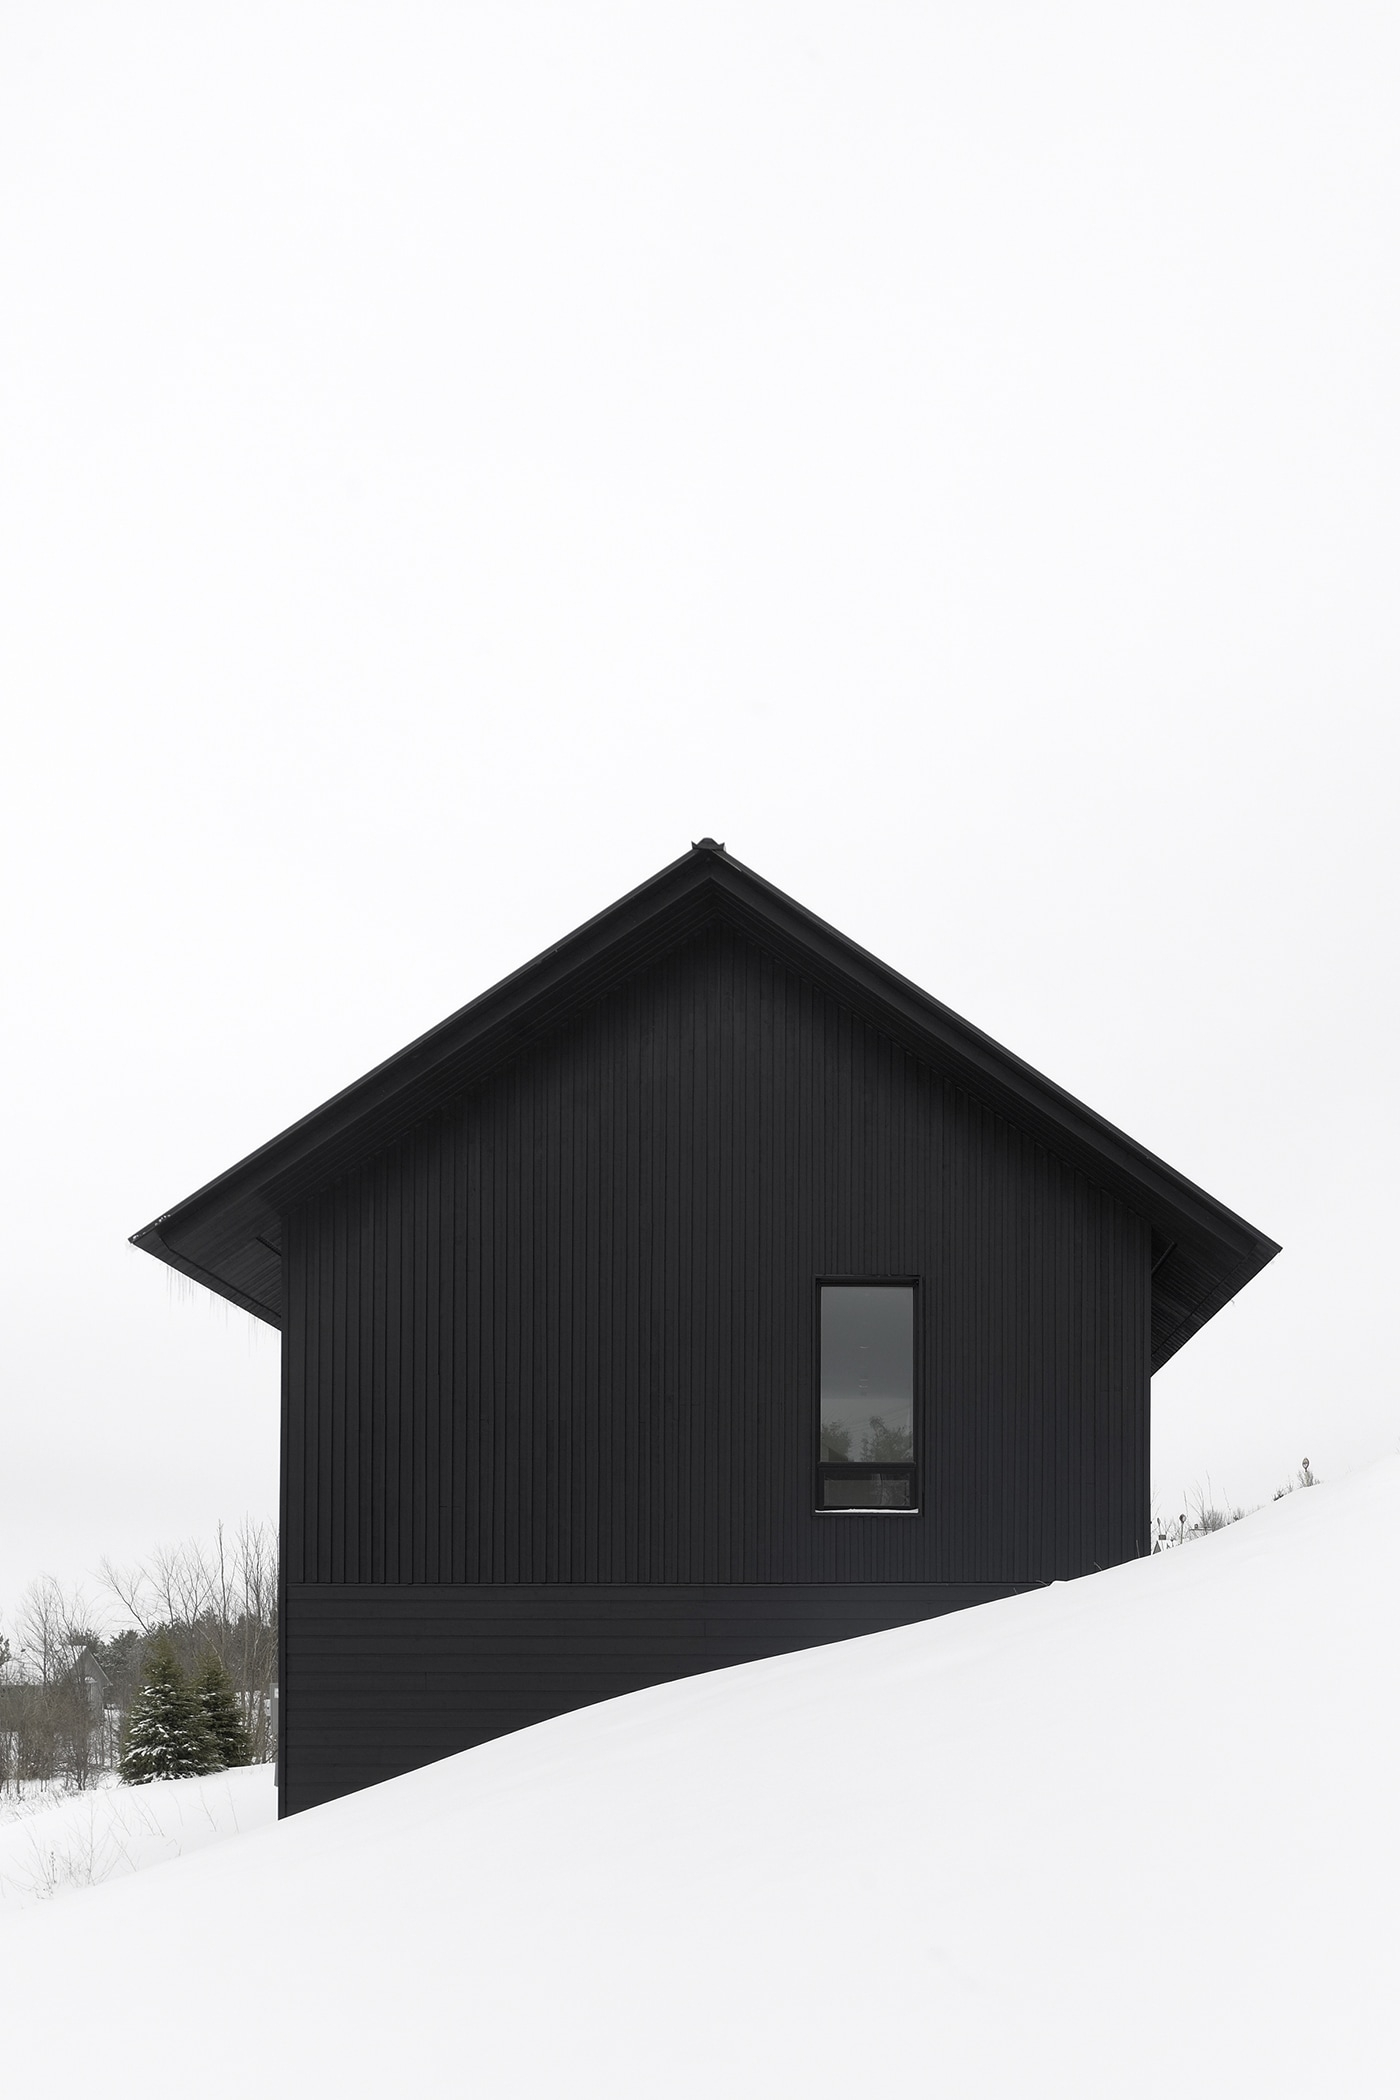 Nestled edge Nottawasaga Bay On - minimalissimo | ello